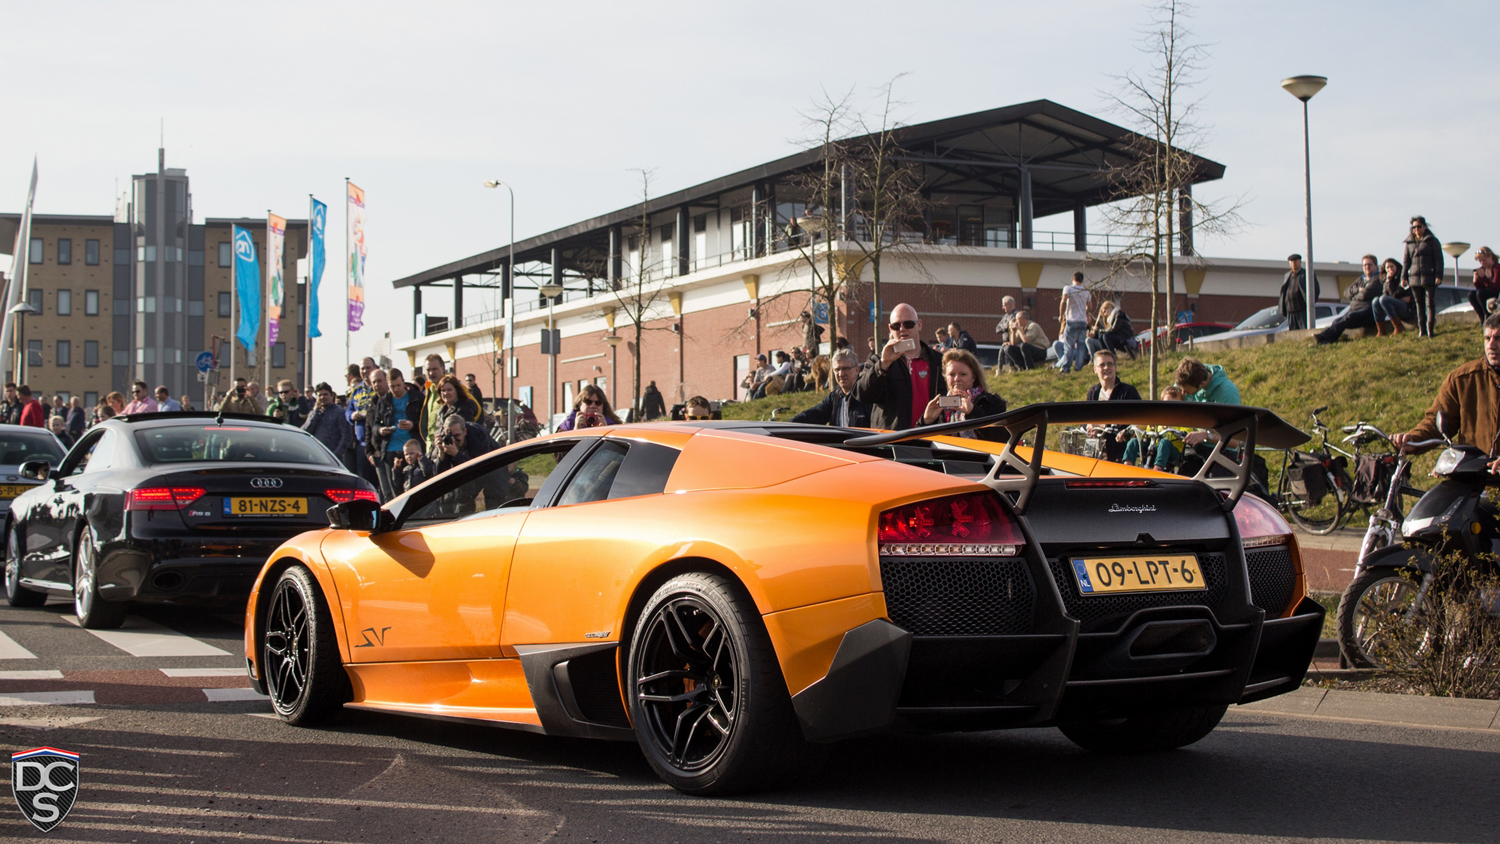 200 Supercars Gather For Quot Need For Speed Quot Movie Premiere Autoevolution